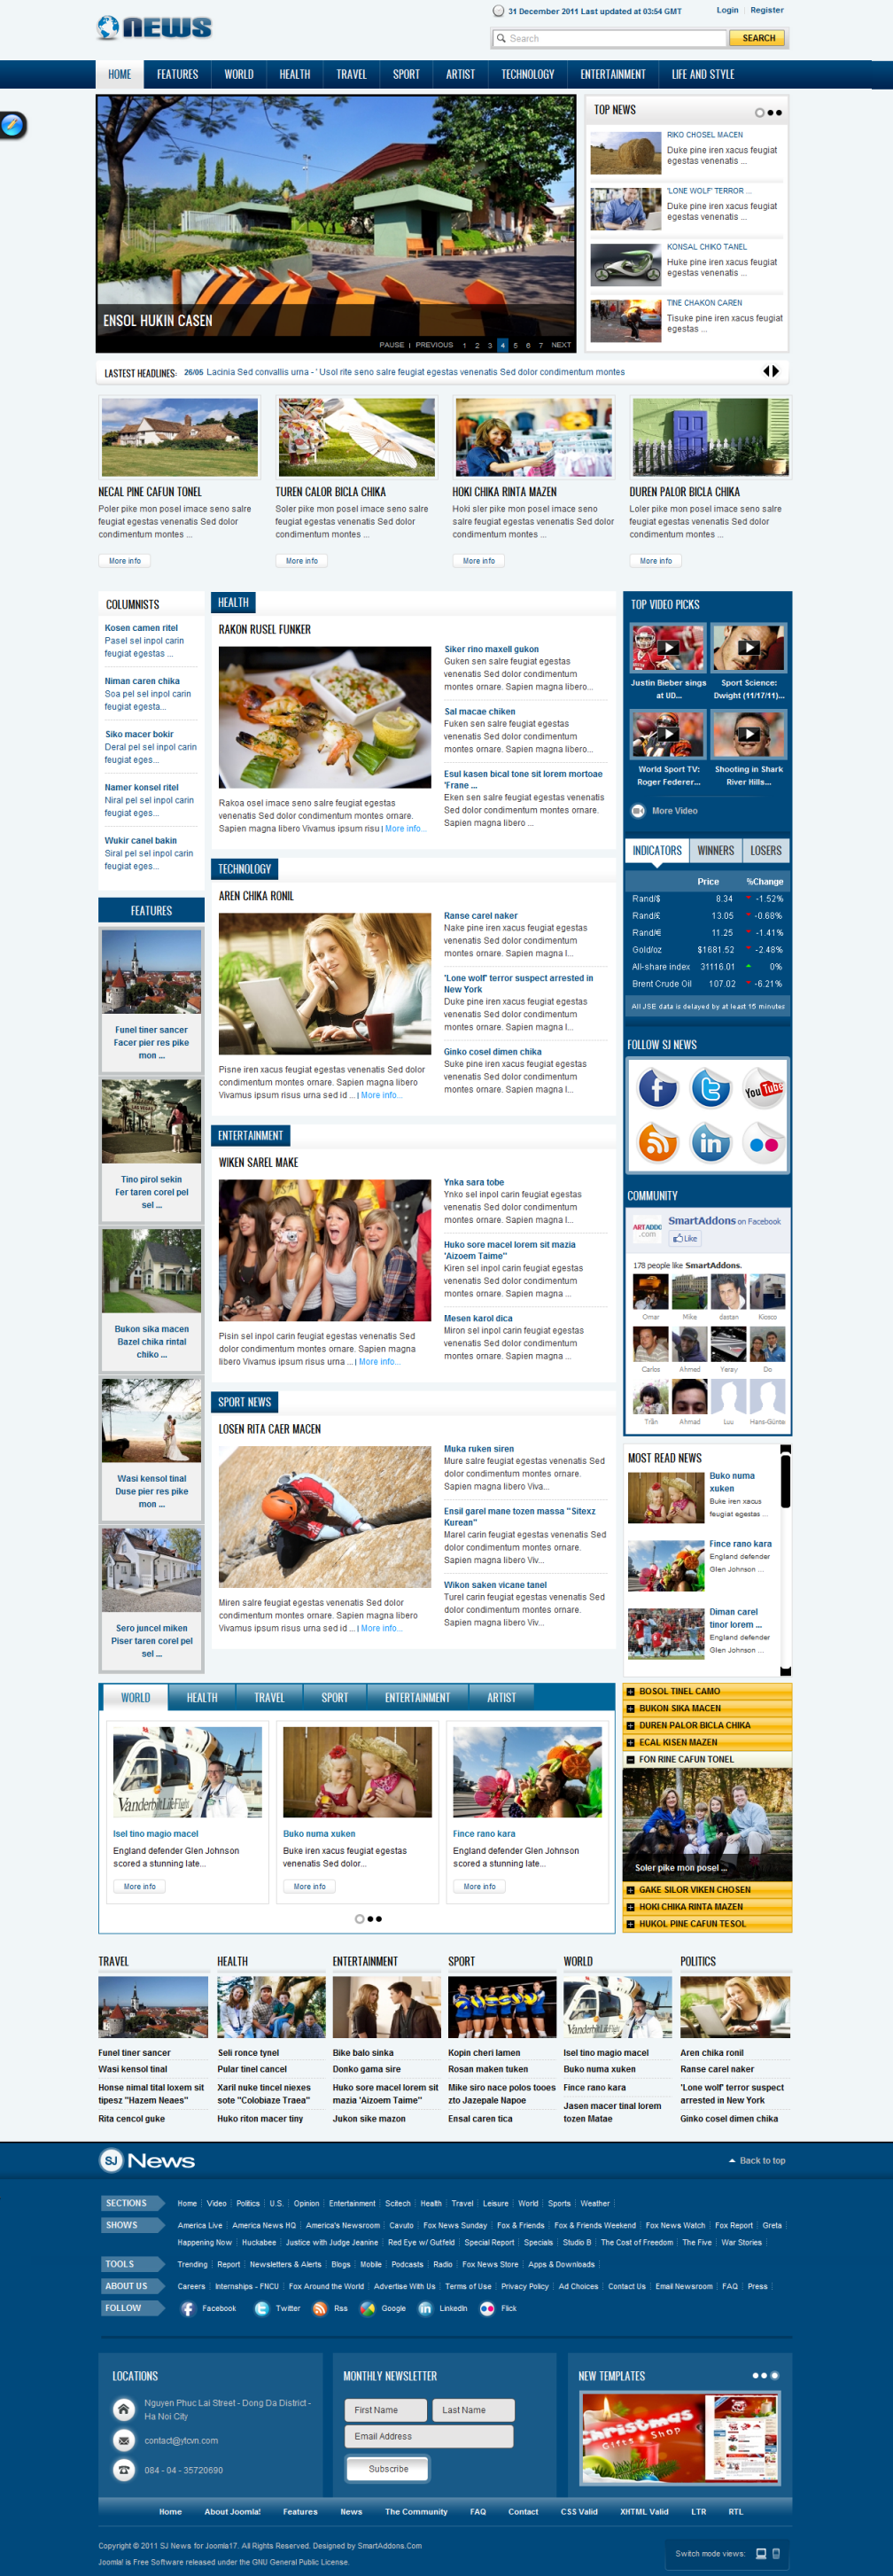 SJ News - Free Joomla News Template - 1index.png